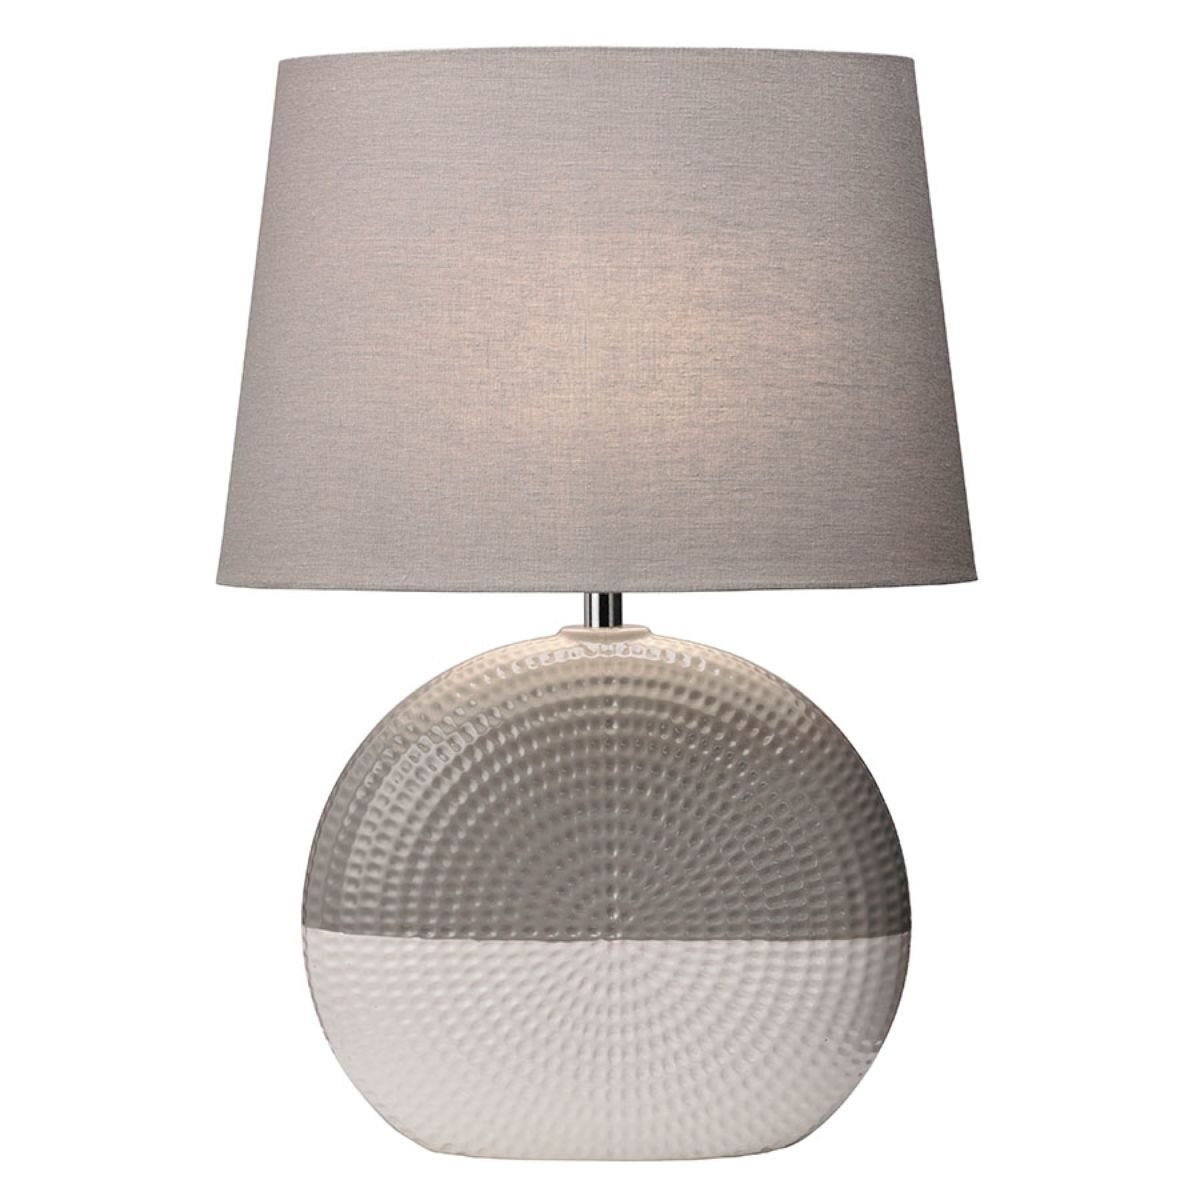 Village At Home Bassett Table Lamp